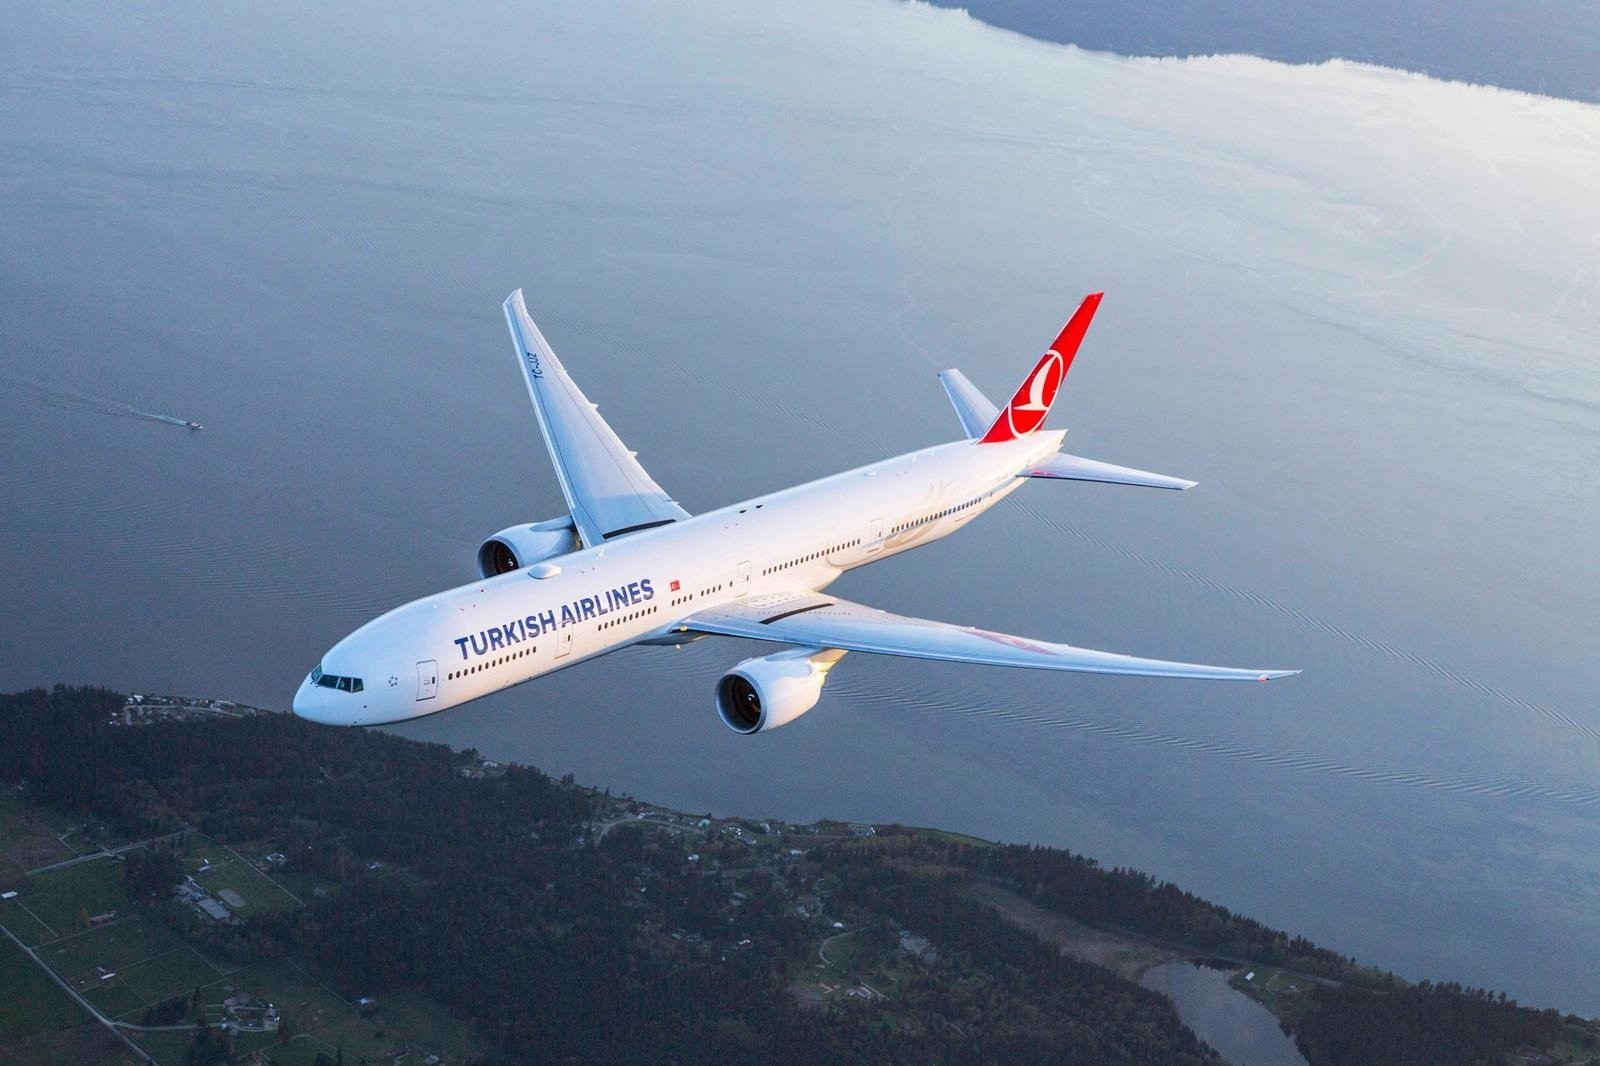 Turkish Airlinesu2019 (THY) passenger occupancy rate to Far Eastern destinations in the 11 months of 2018 soared 2.8 points to 85.9 percent year on year.